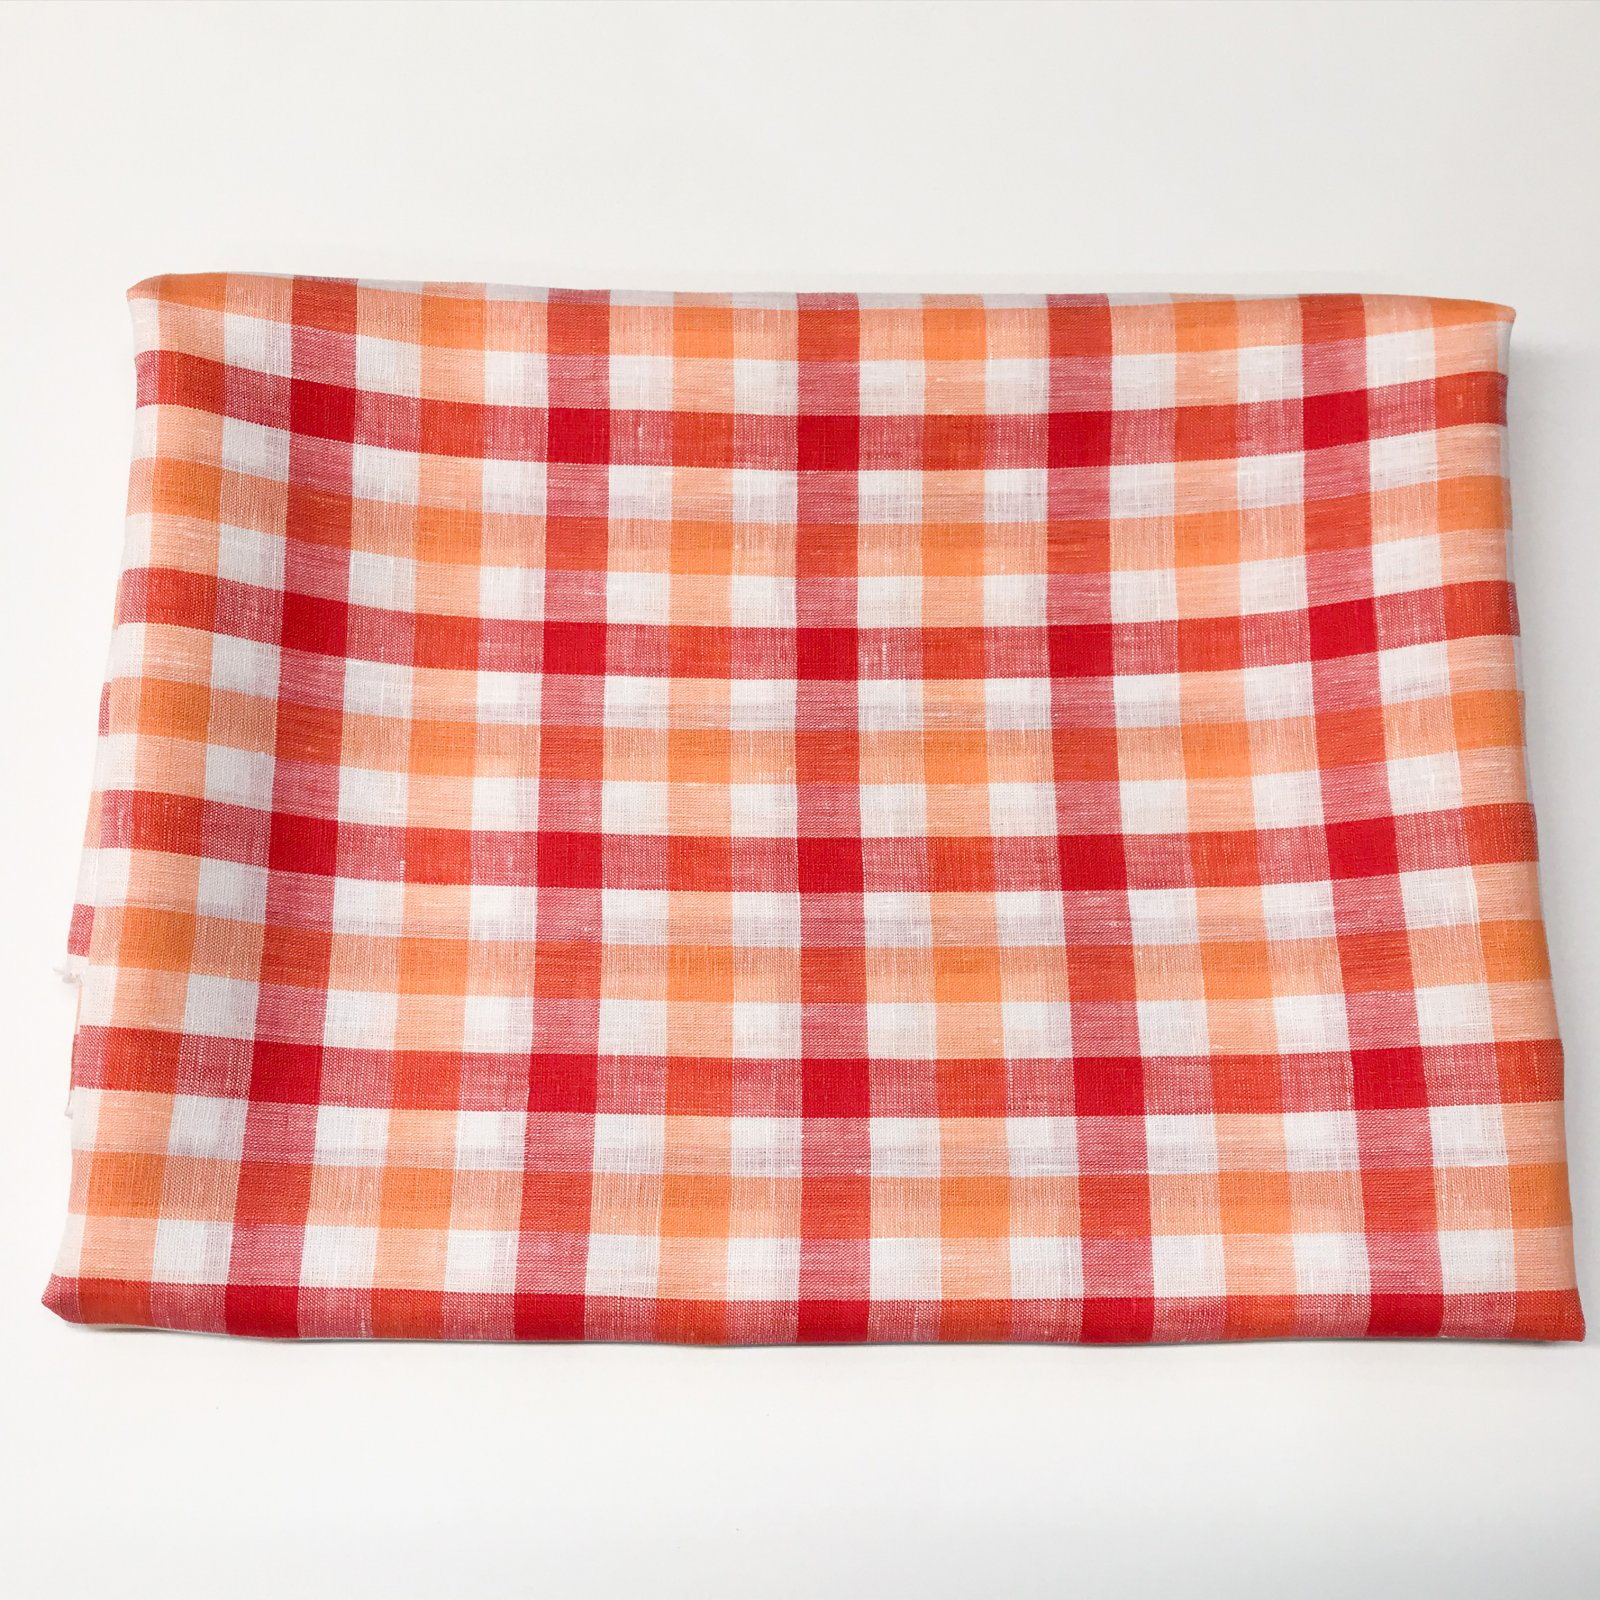 Linen - Coral Gingham 1 1/2 yard